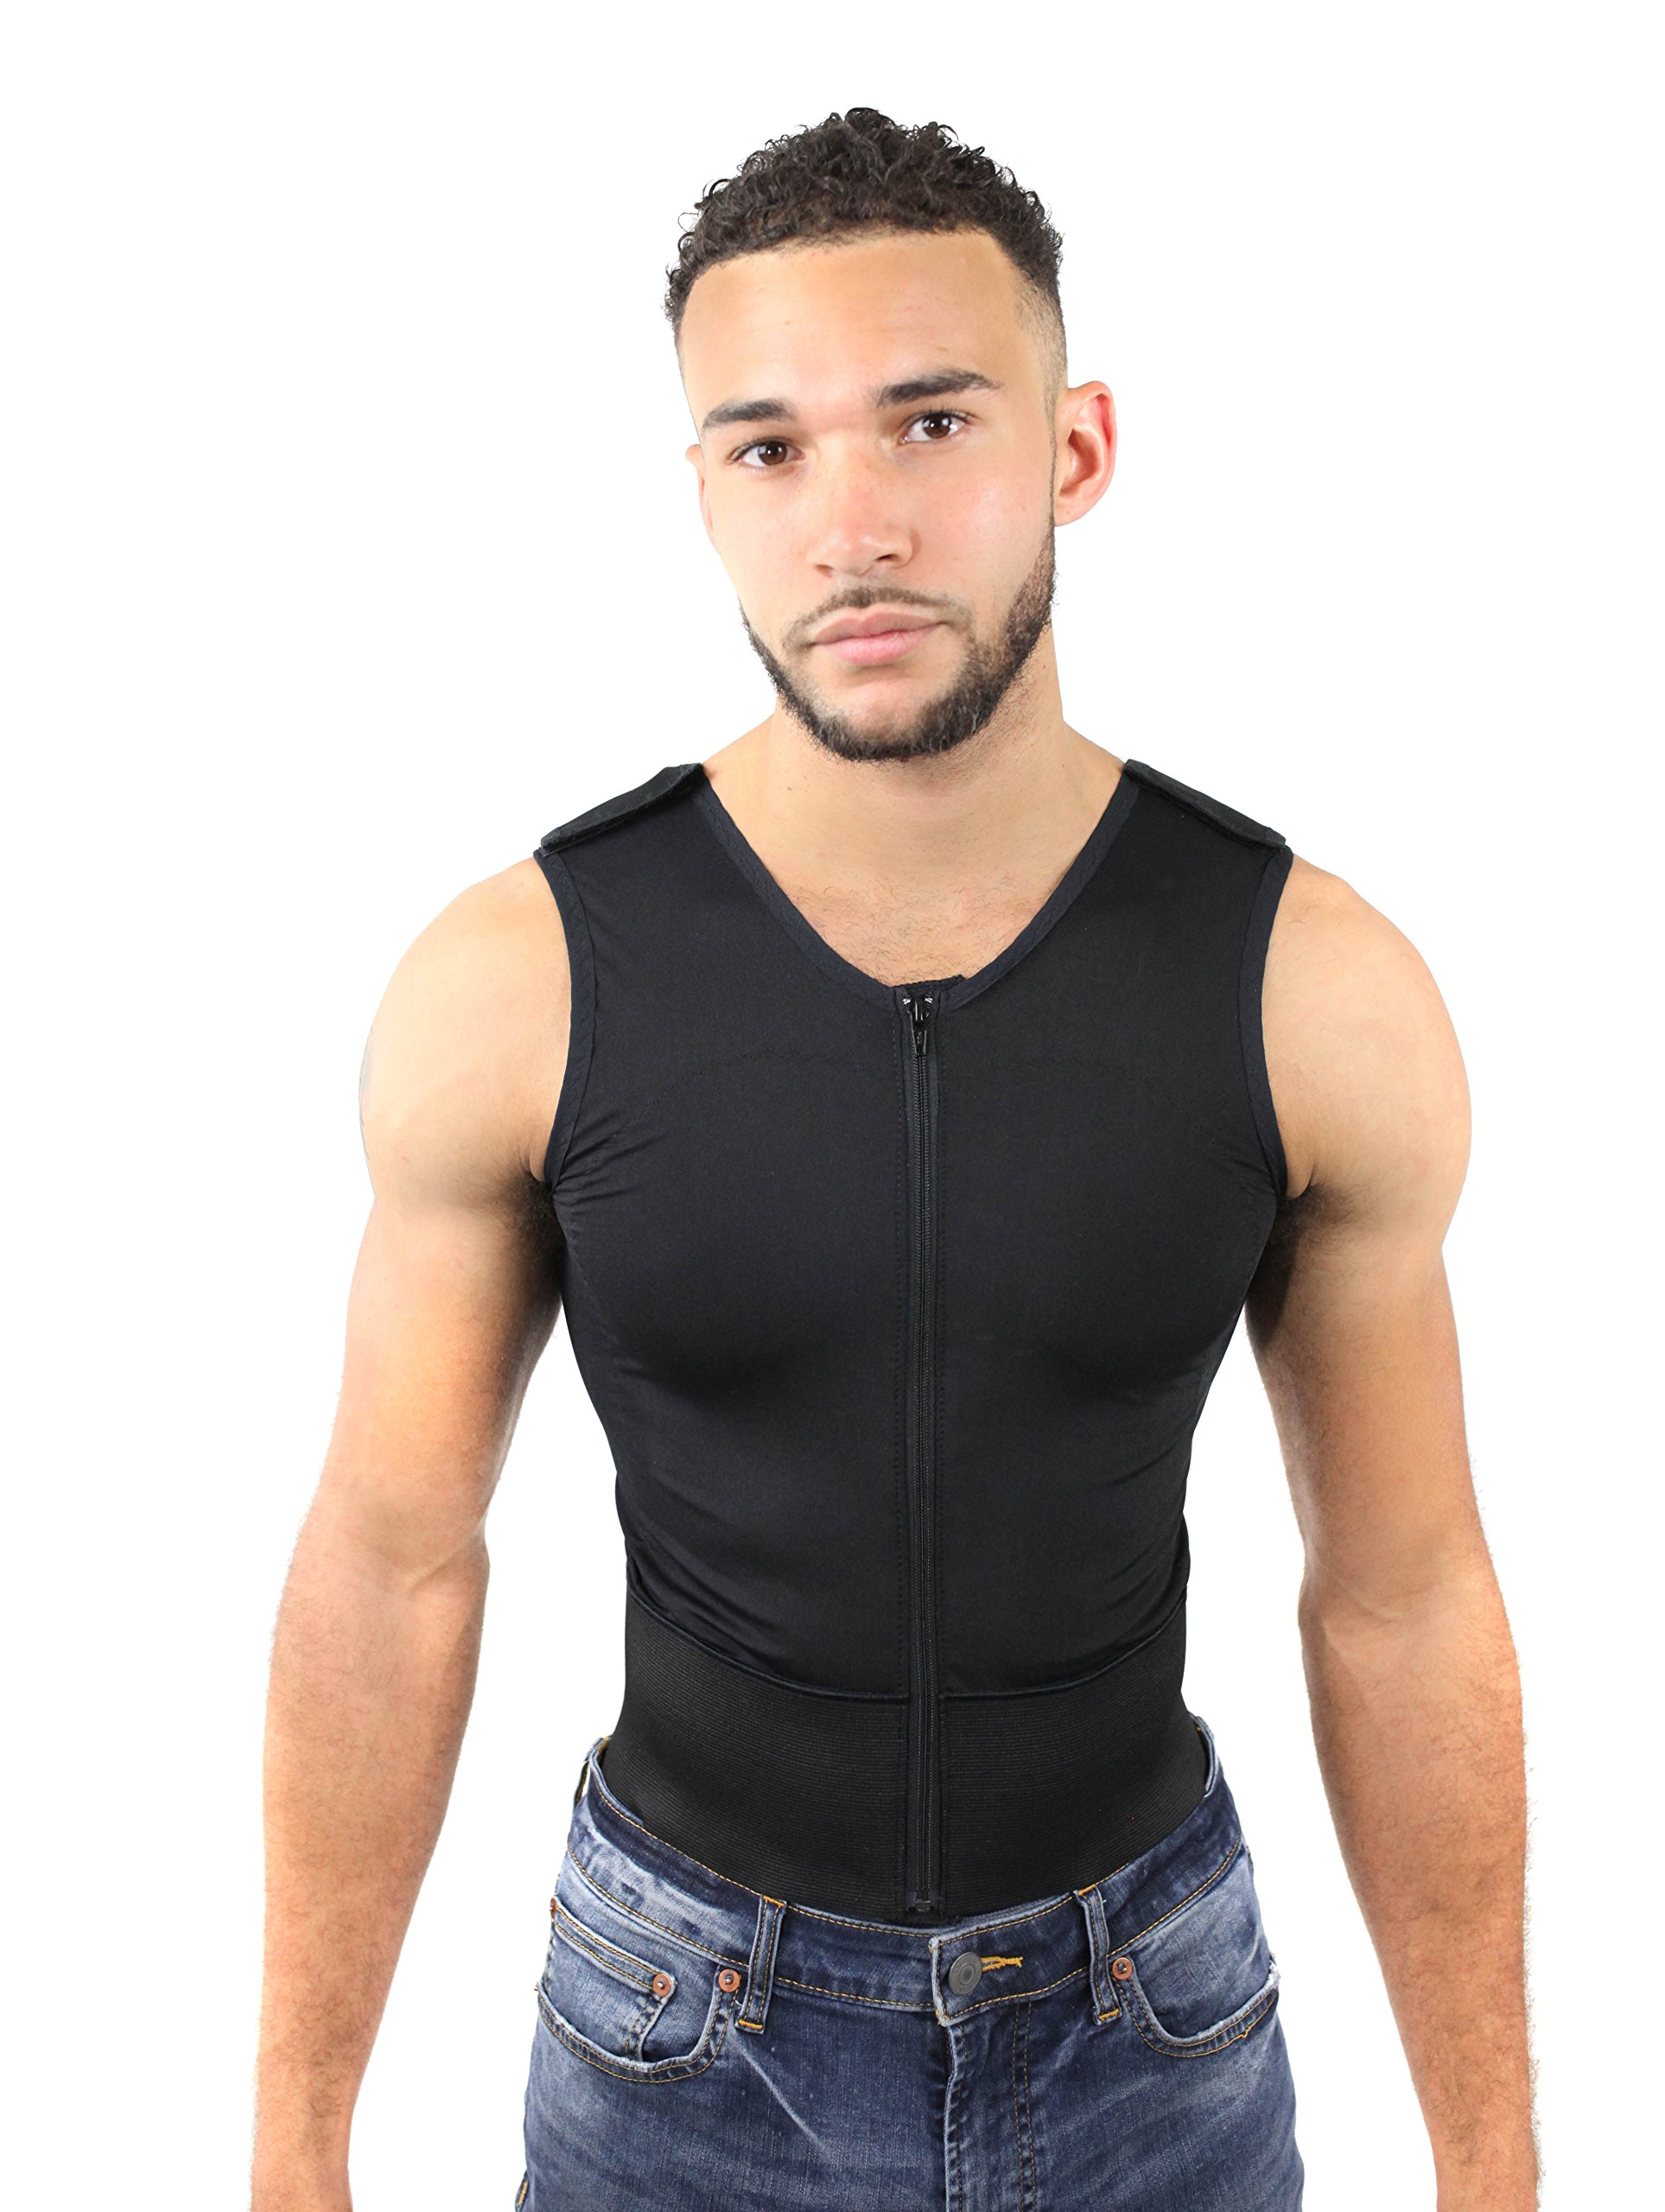 ContourMD Post OP Gynecomastia Recovery Garment Chest Compression Male Vest -S11